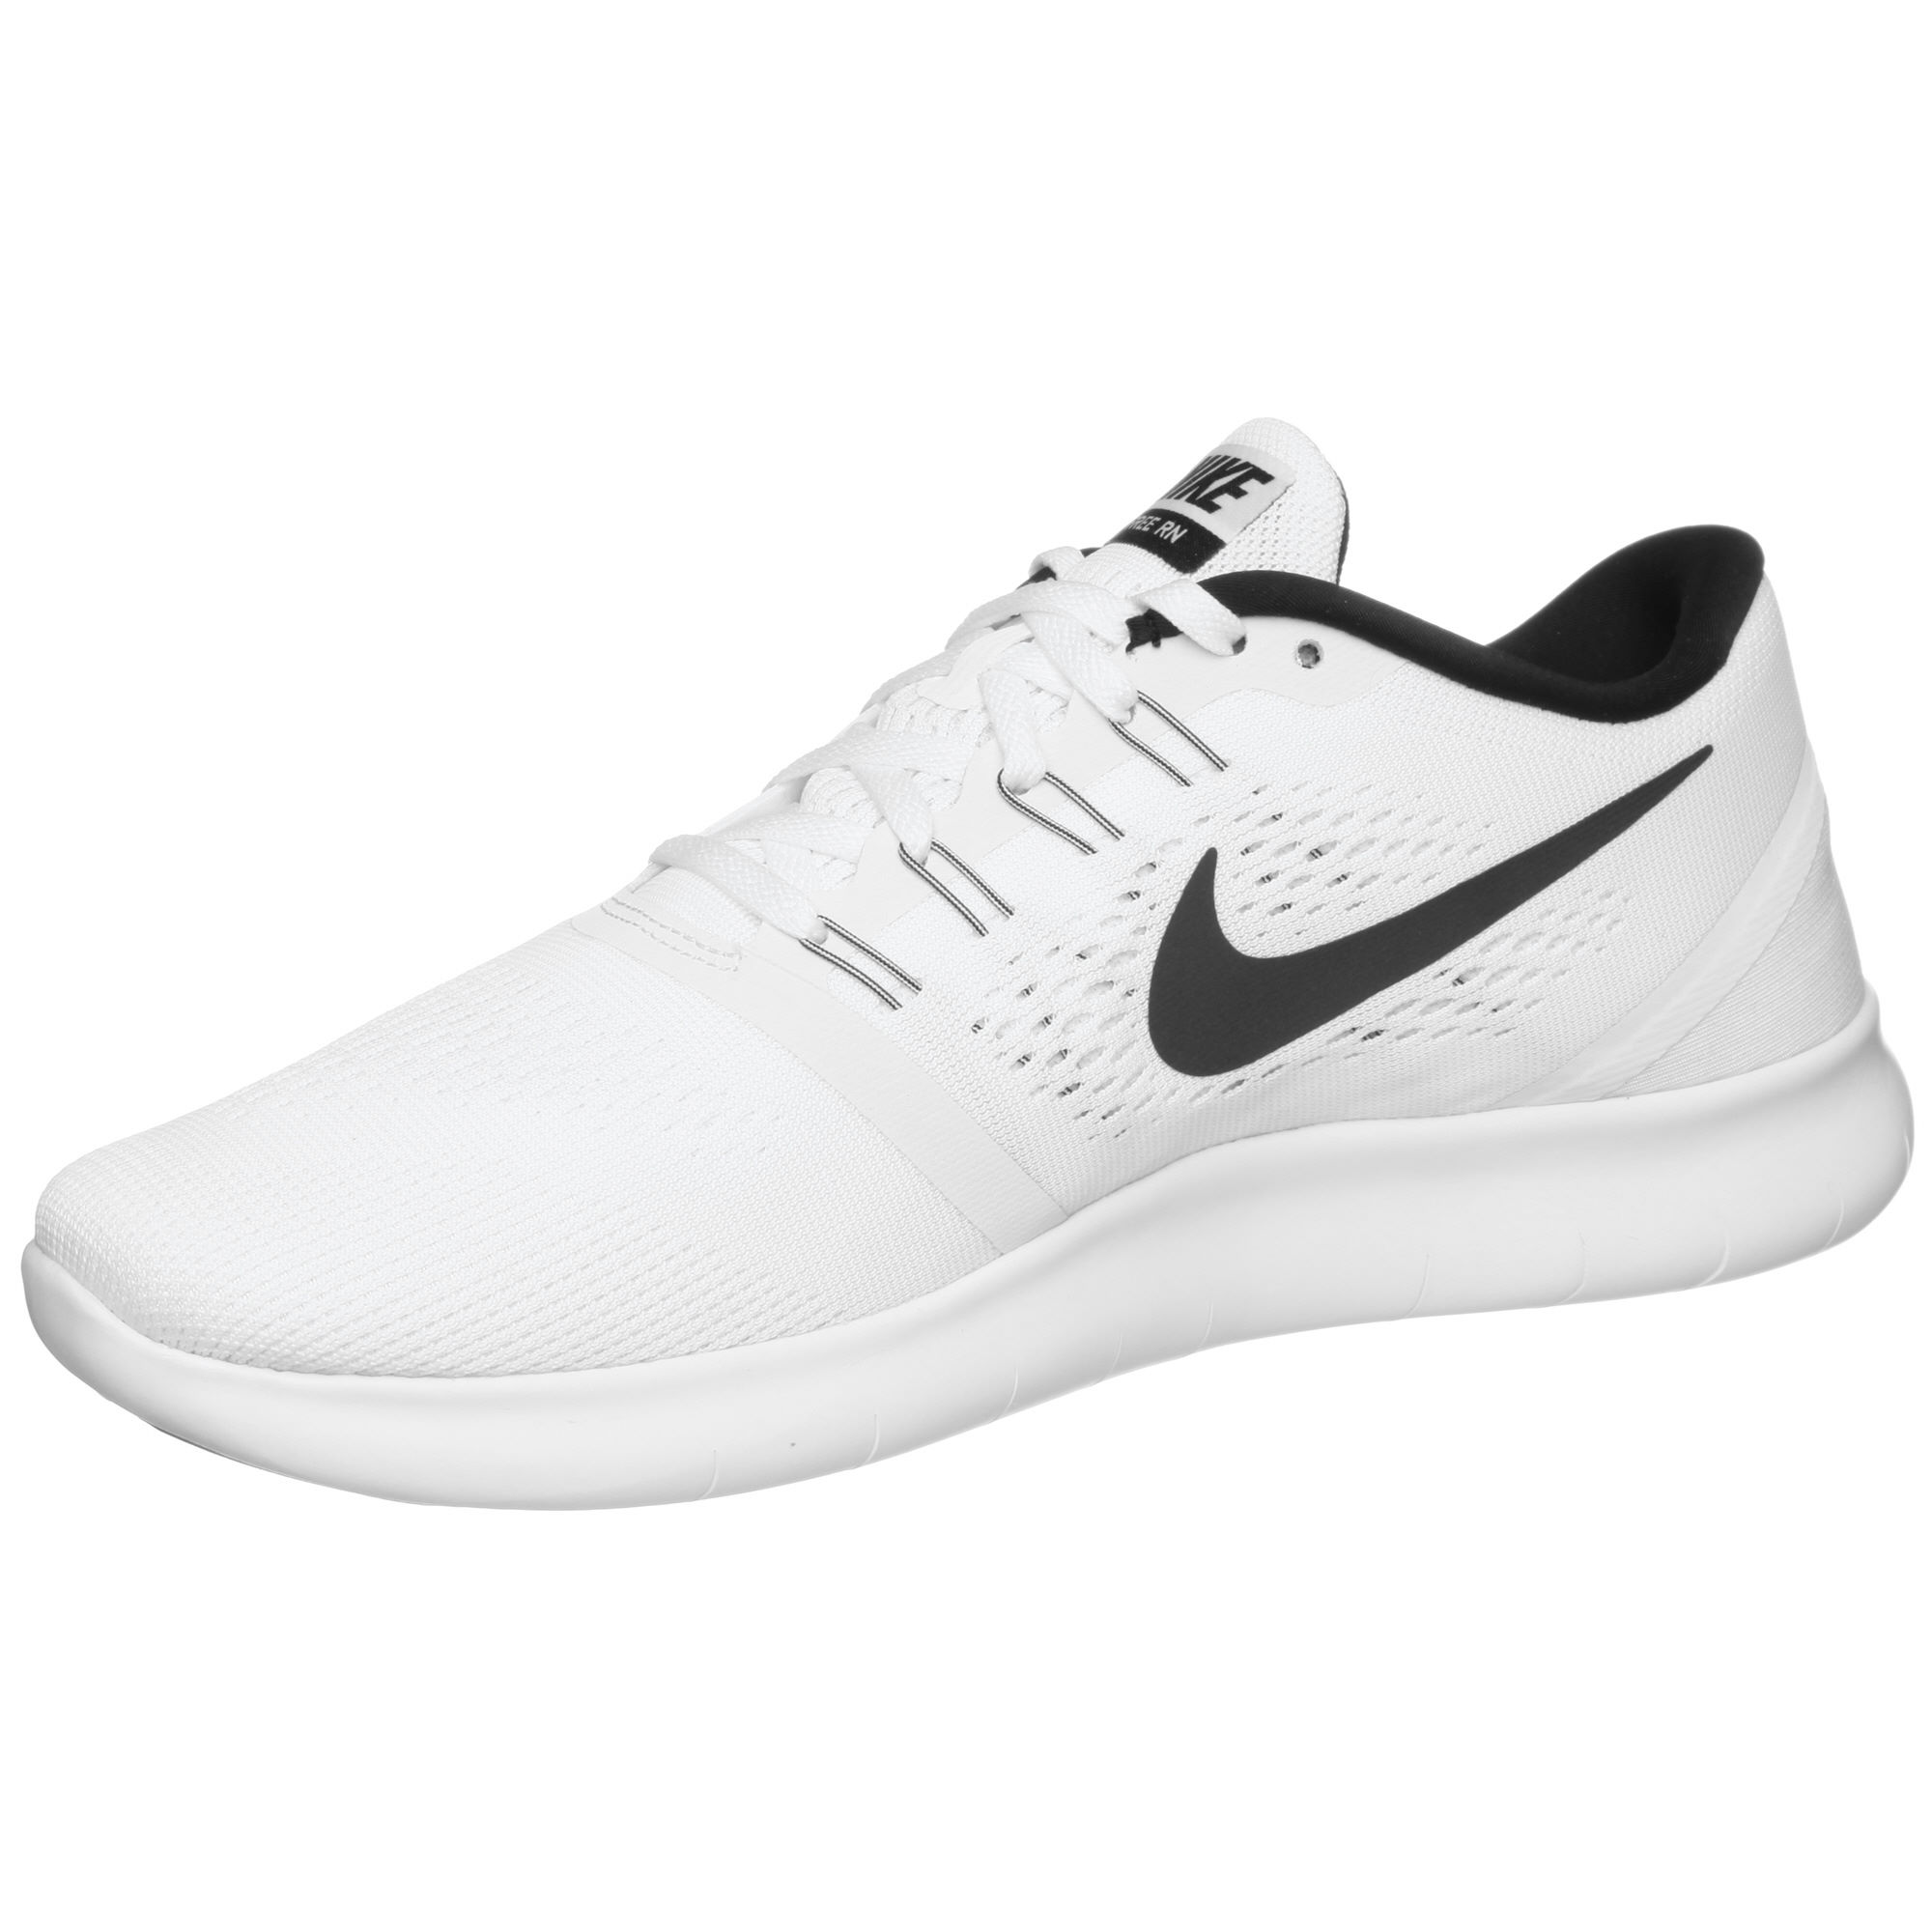 premium selection d28e4 1530a Wiggle Cycle To Work | Nike Womens Free RN Running Shoe ...